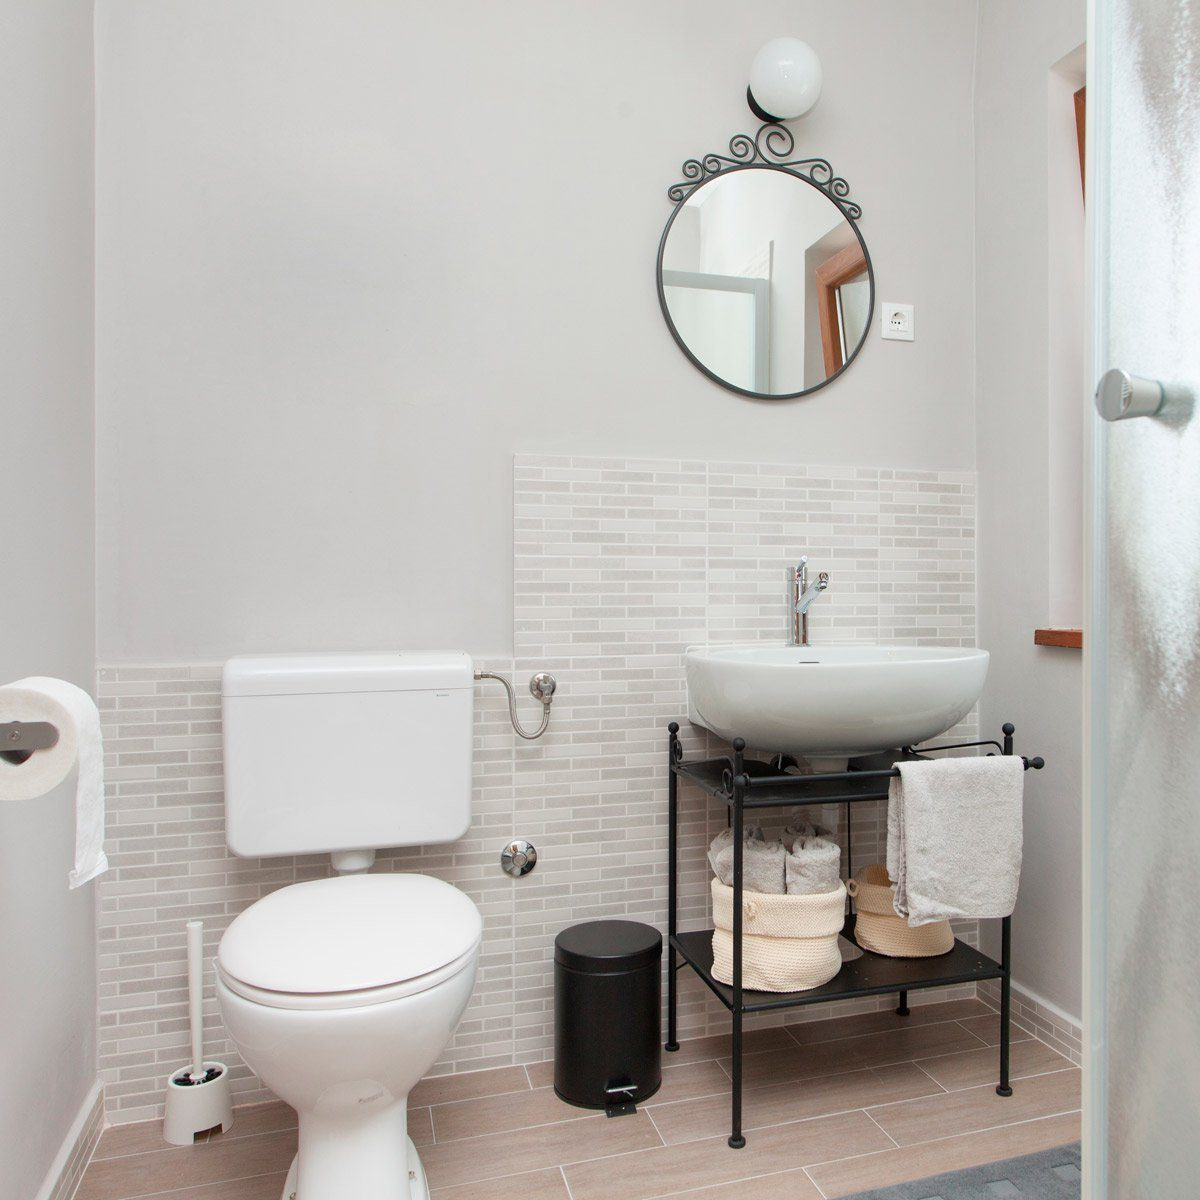 10 Small Bathroom Ideas That Make A Big Impact